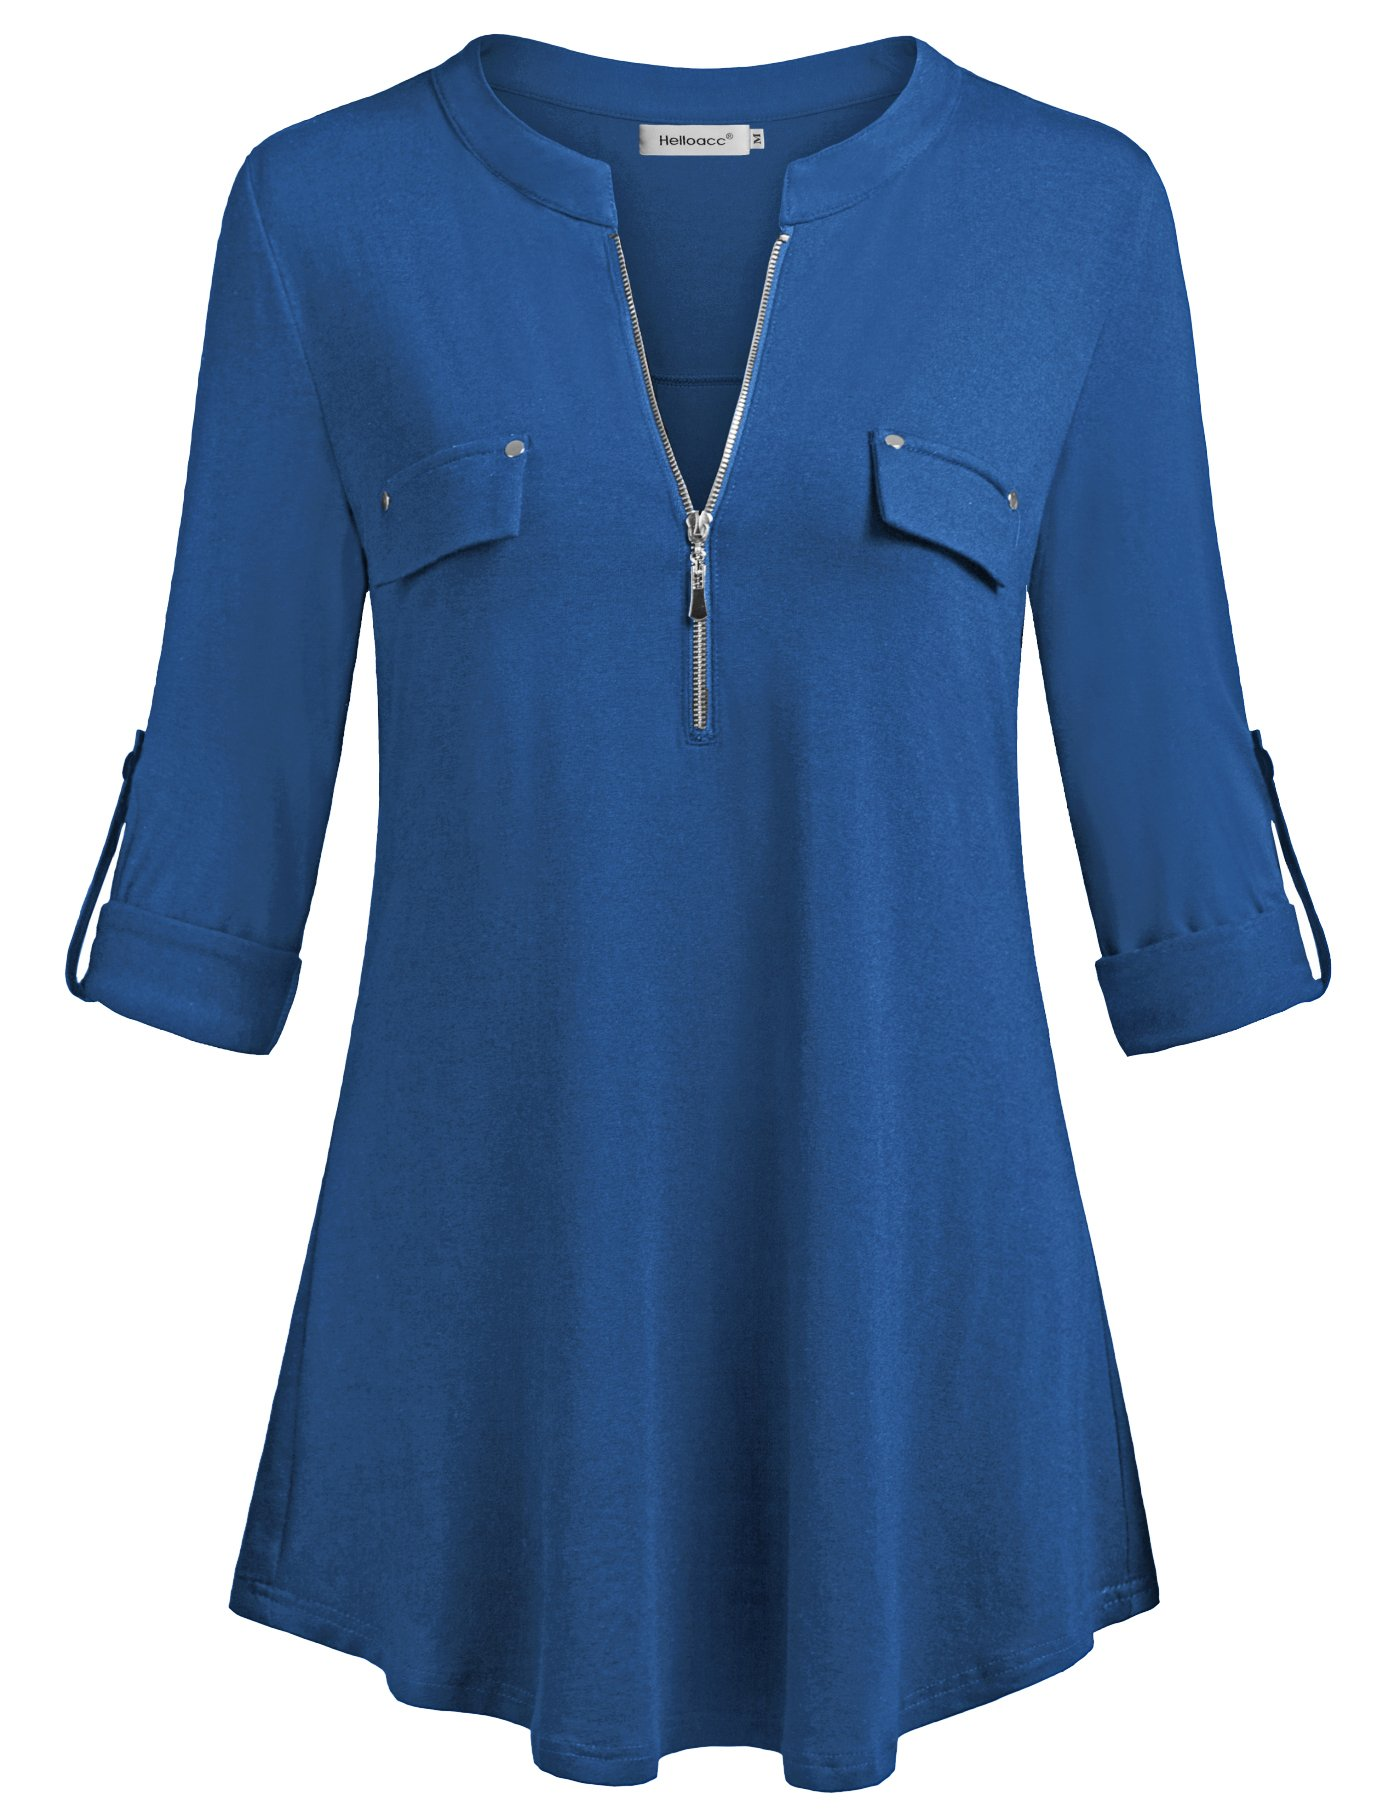 Helloacc Ladies Blouses,Loose Fit Split V Neck Work Office Wear Easy Fit Tops & Shirts Top Outfits Casual Dress Shirts Shirttail Flare Hem Aline Tshirts Fall Fashion Outdoor Fancy Blue L US14